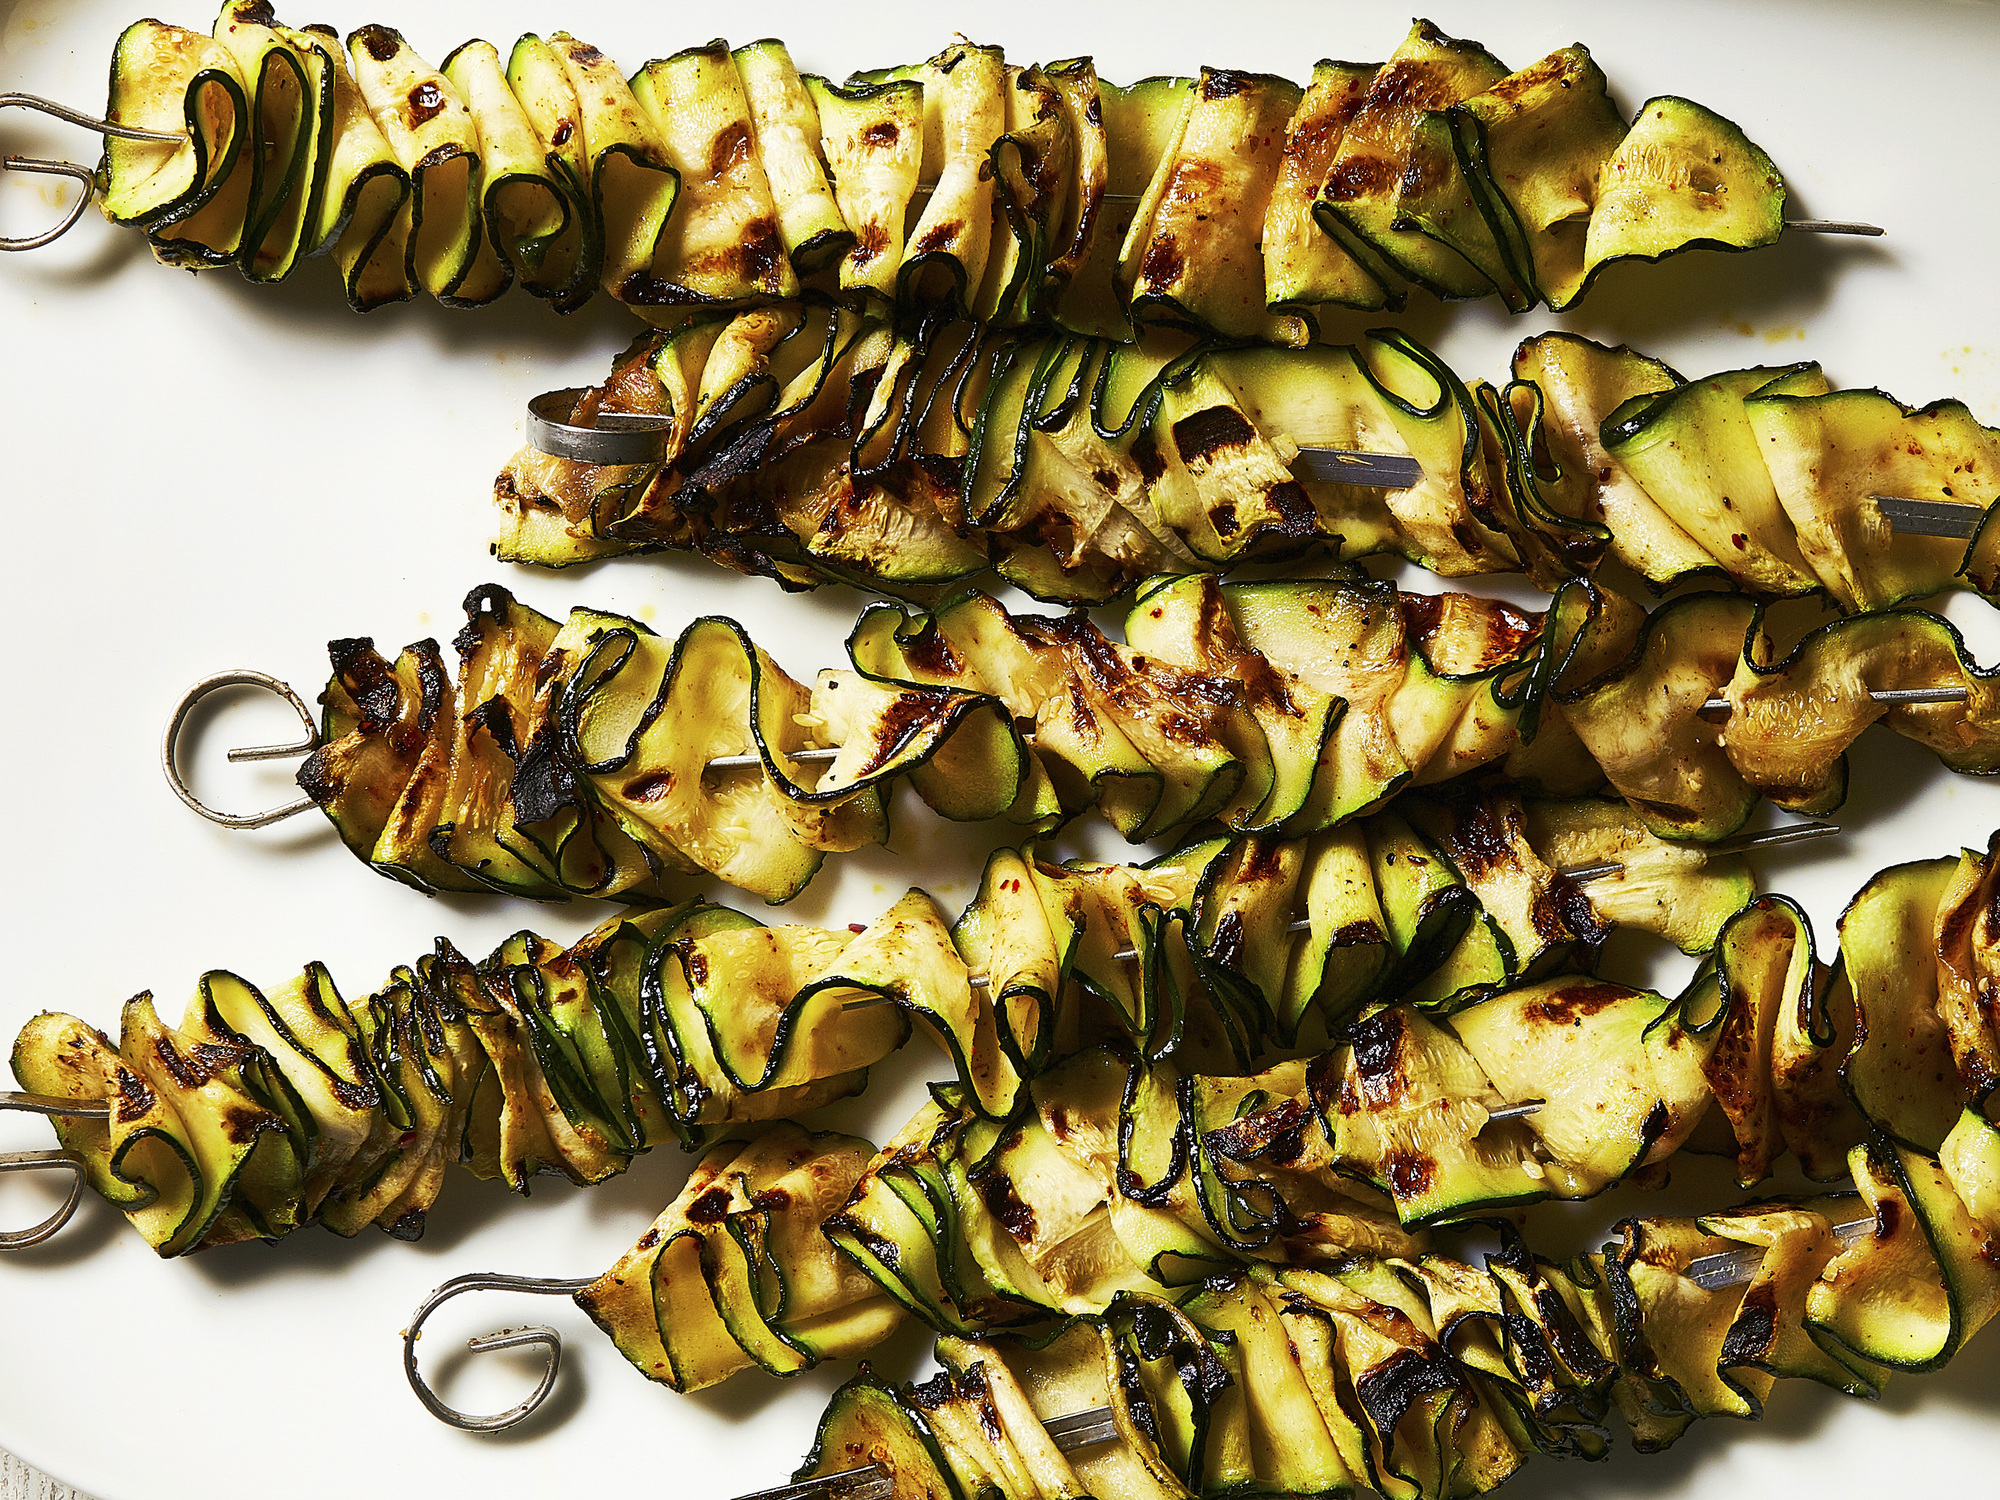 Grilled zucchini ribbons. Food styled by Roscoe Betsill.